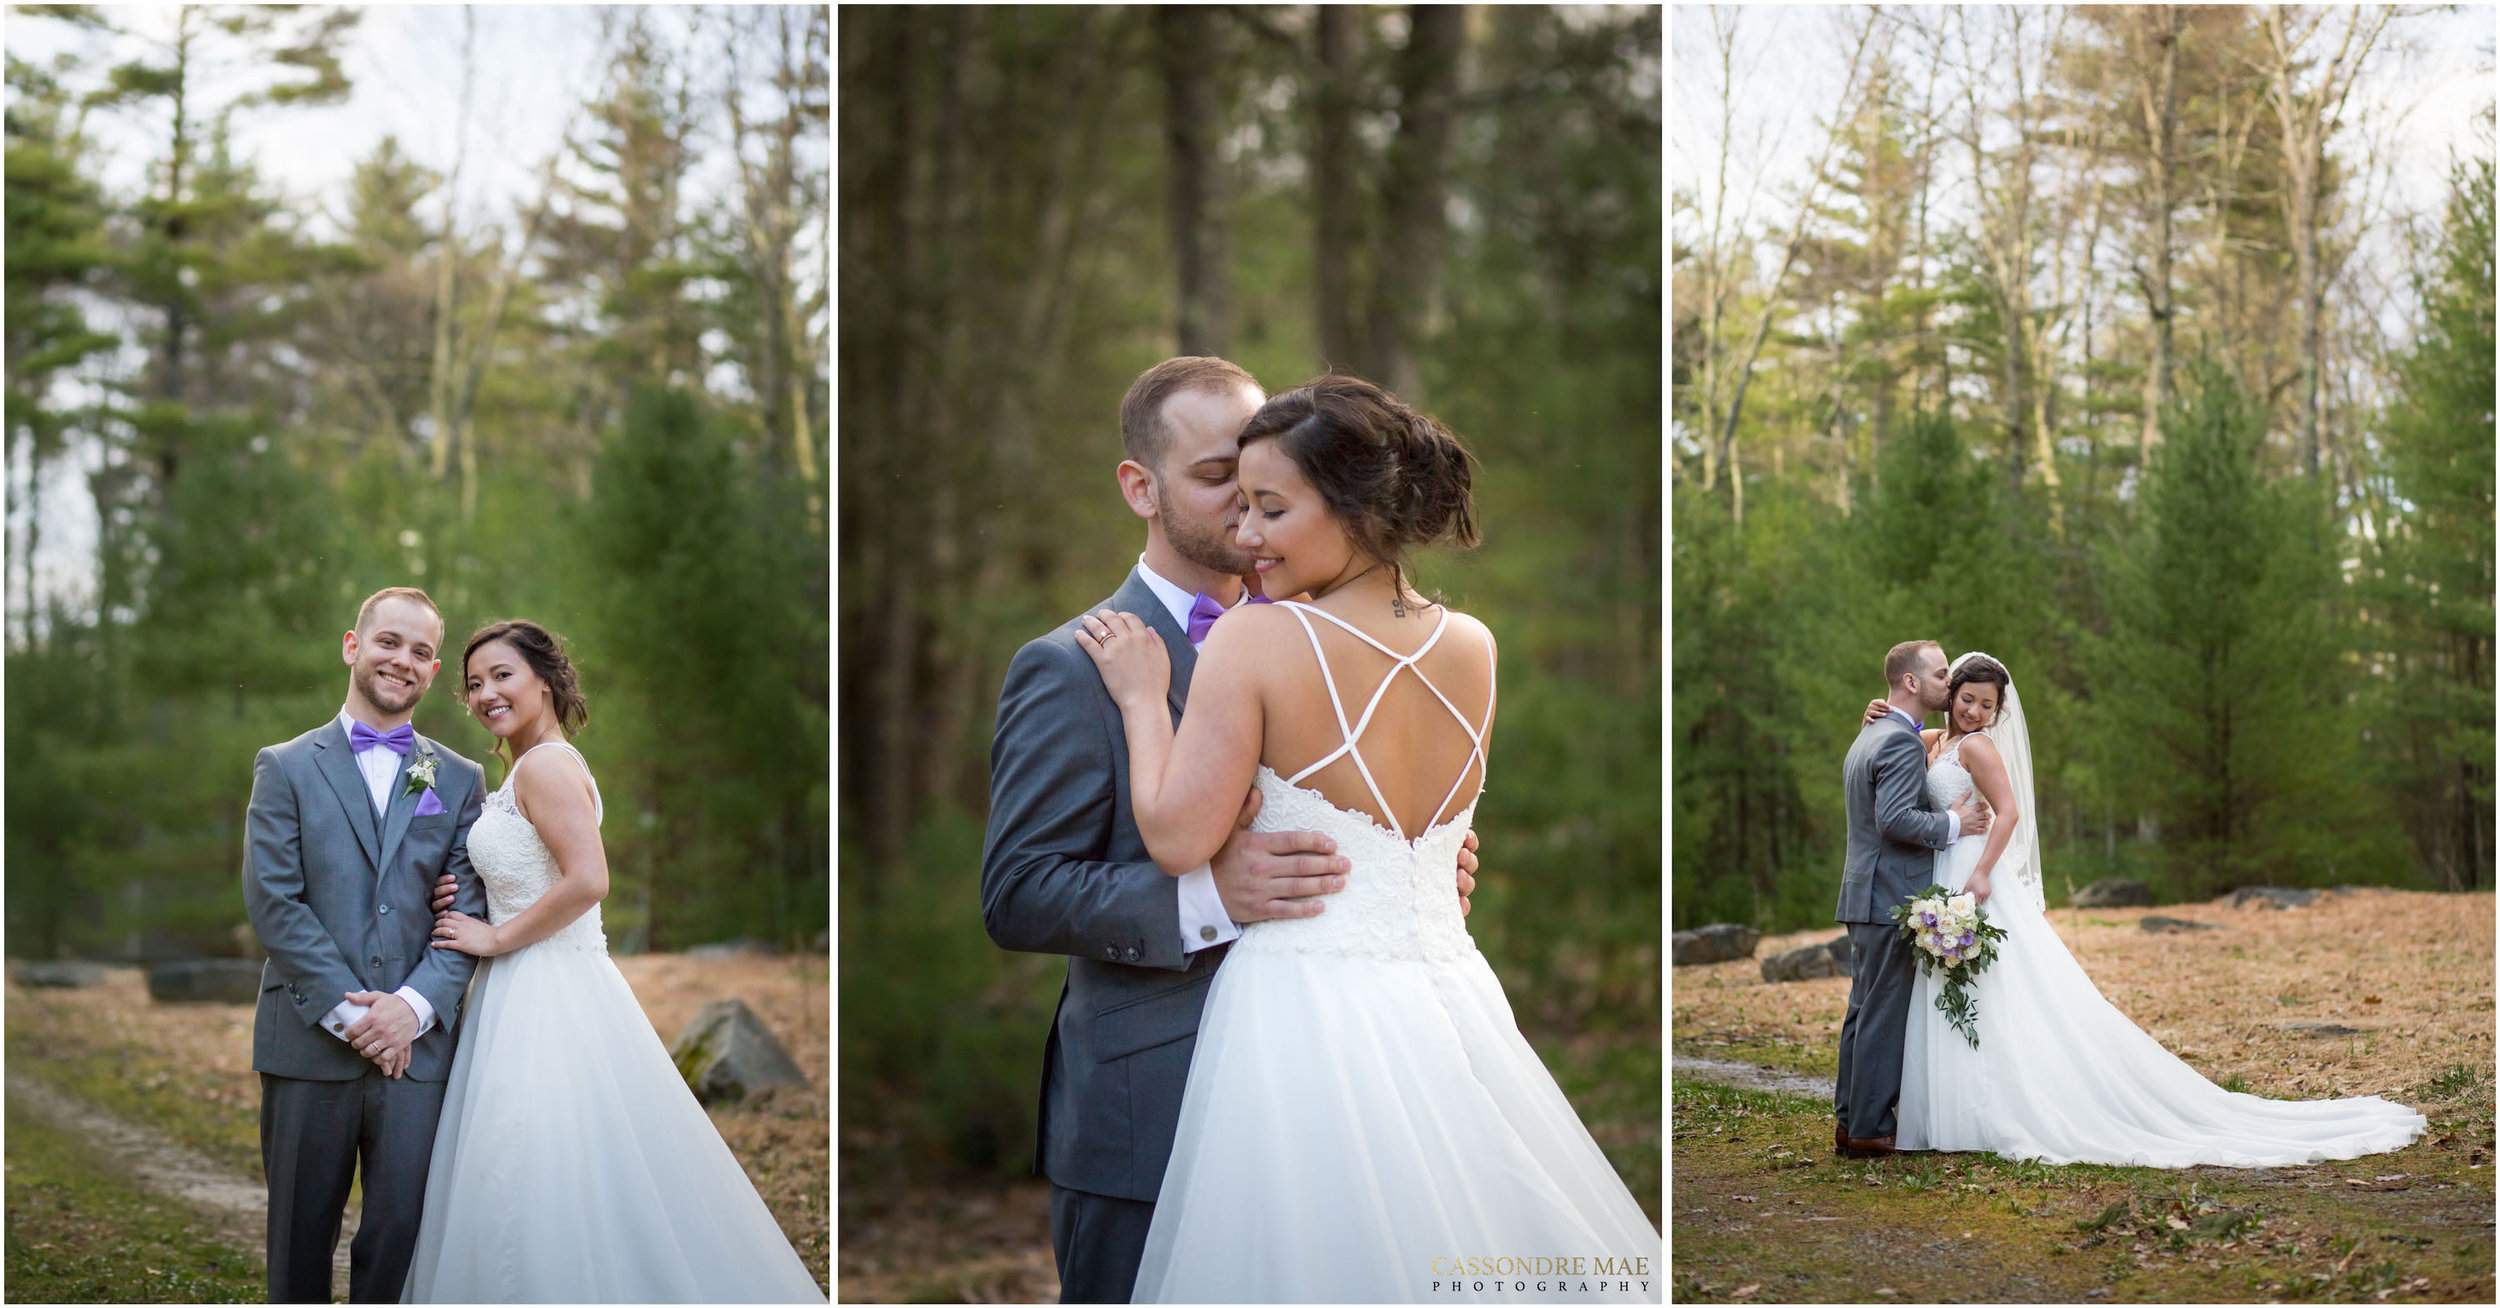 Cassondre Mae Photography Woodloch Resort Wedding 30.jpg